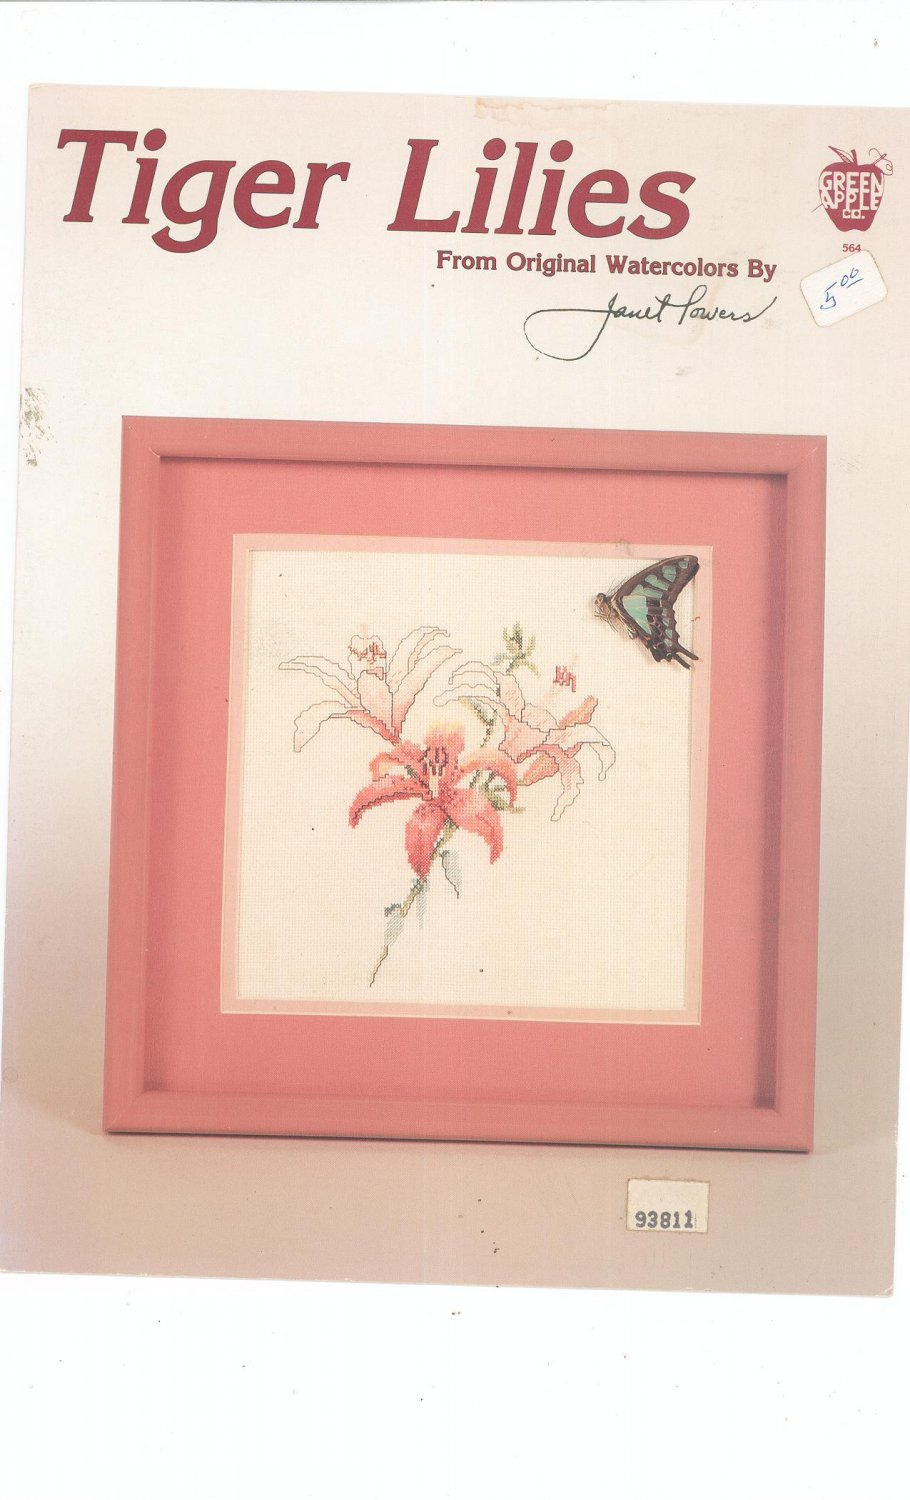 Tiger Lilies From Original Watercolors By Janet Powers Green Apple Co. 564 Cross Stitch